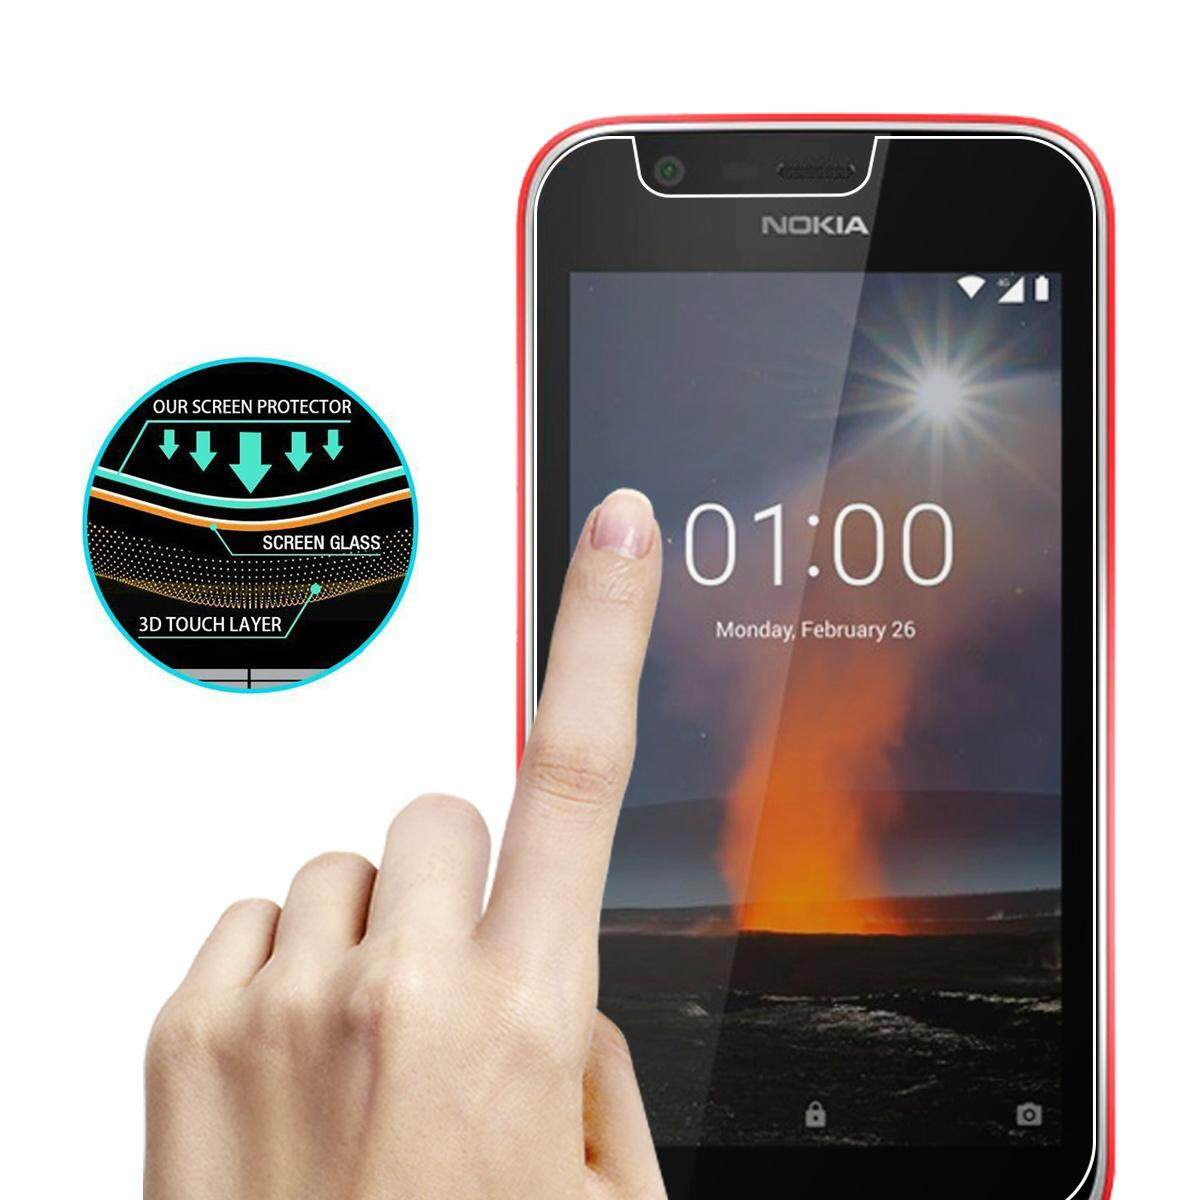 [Original] 1 Pack Tempered Glass Screen Protector Film Anti-Scratch Screen Cover for